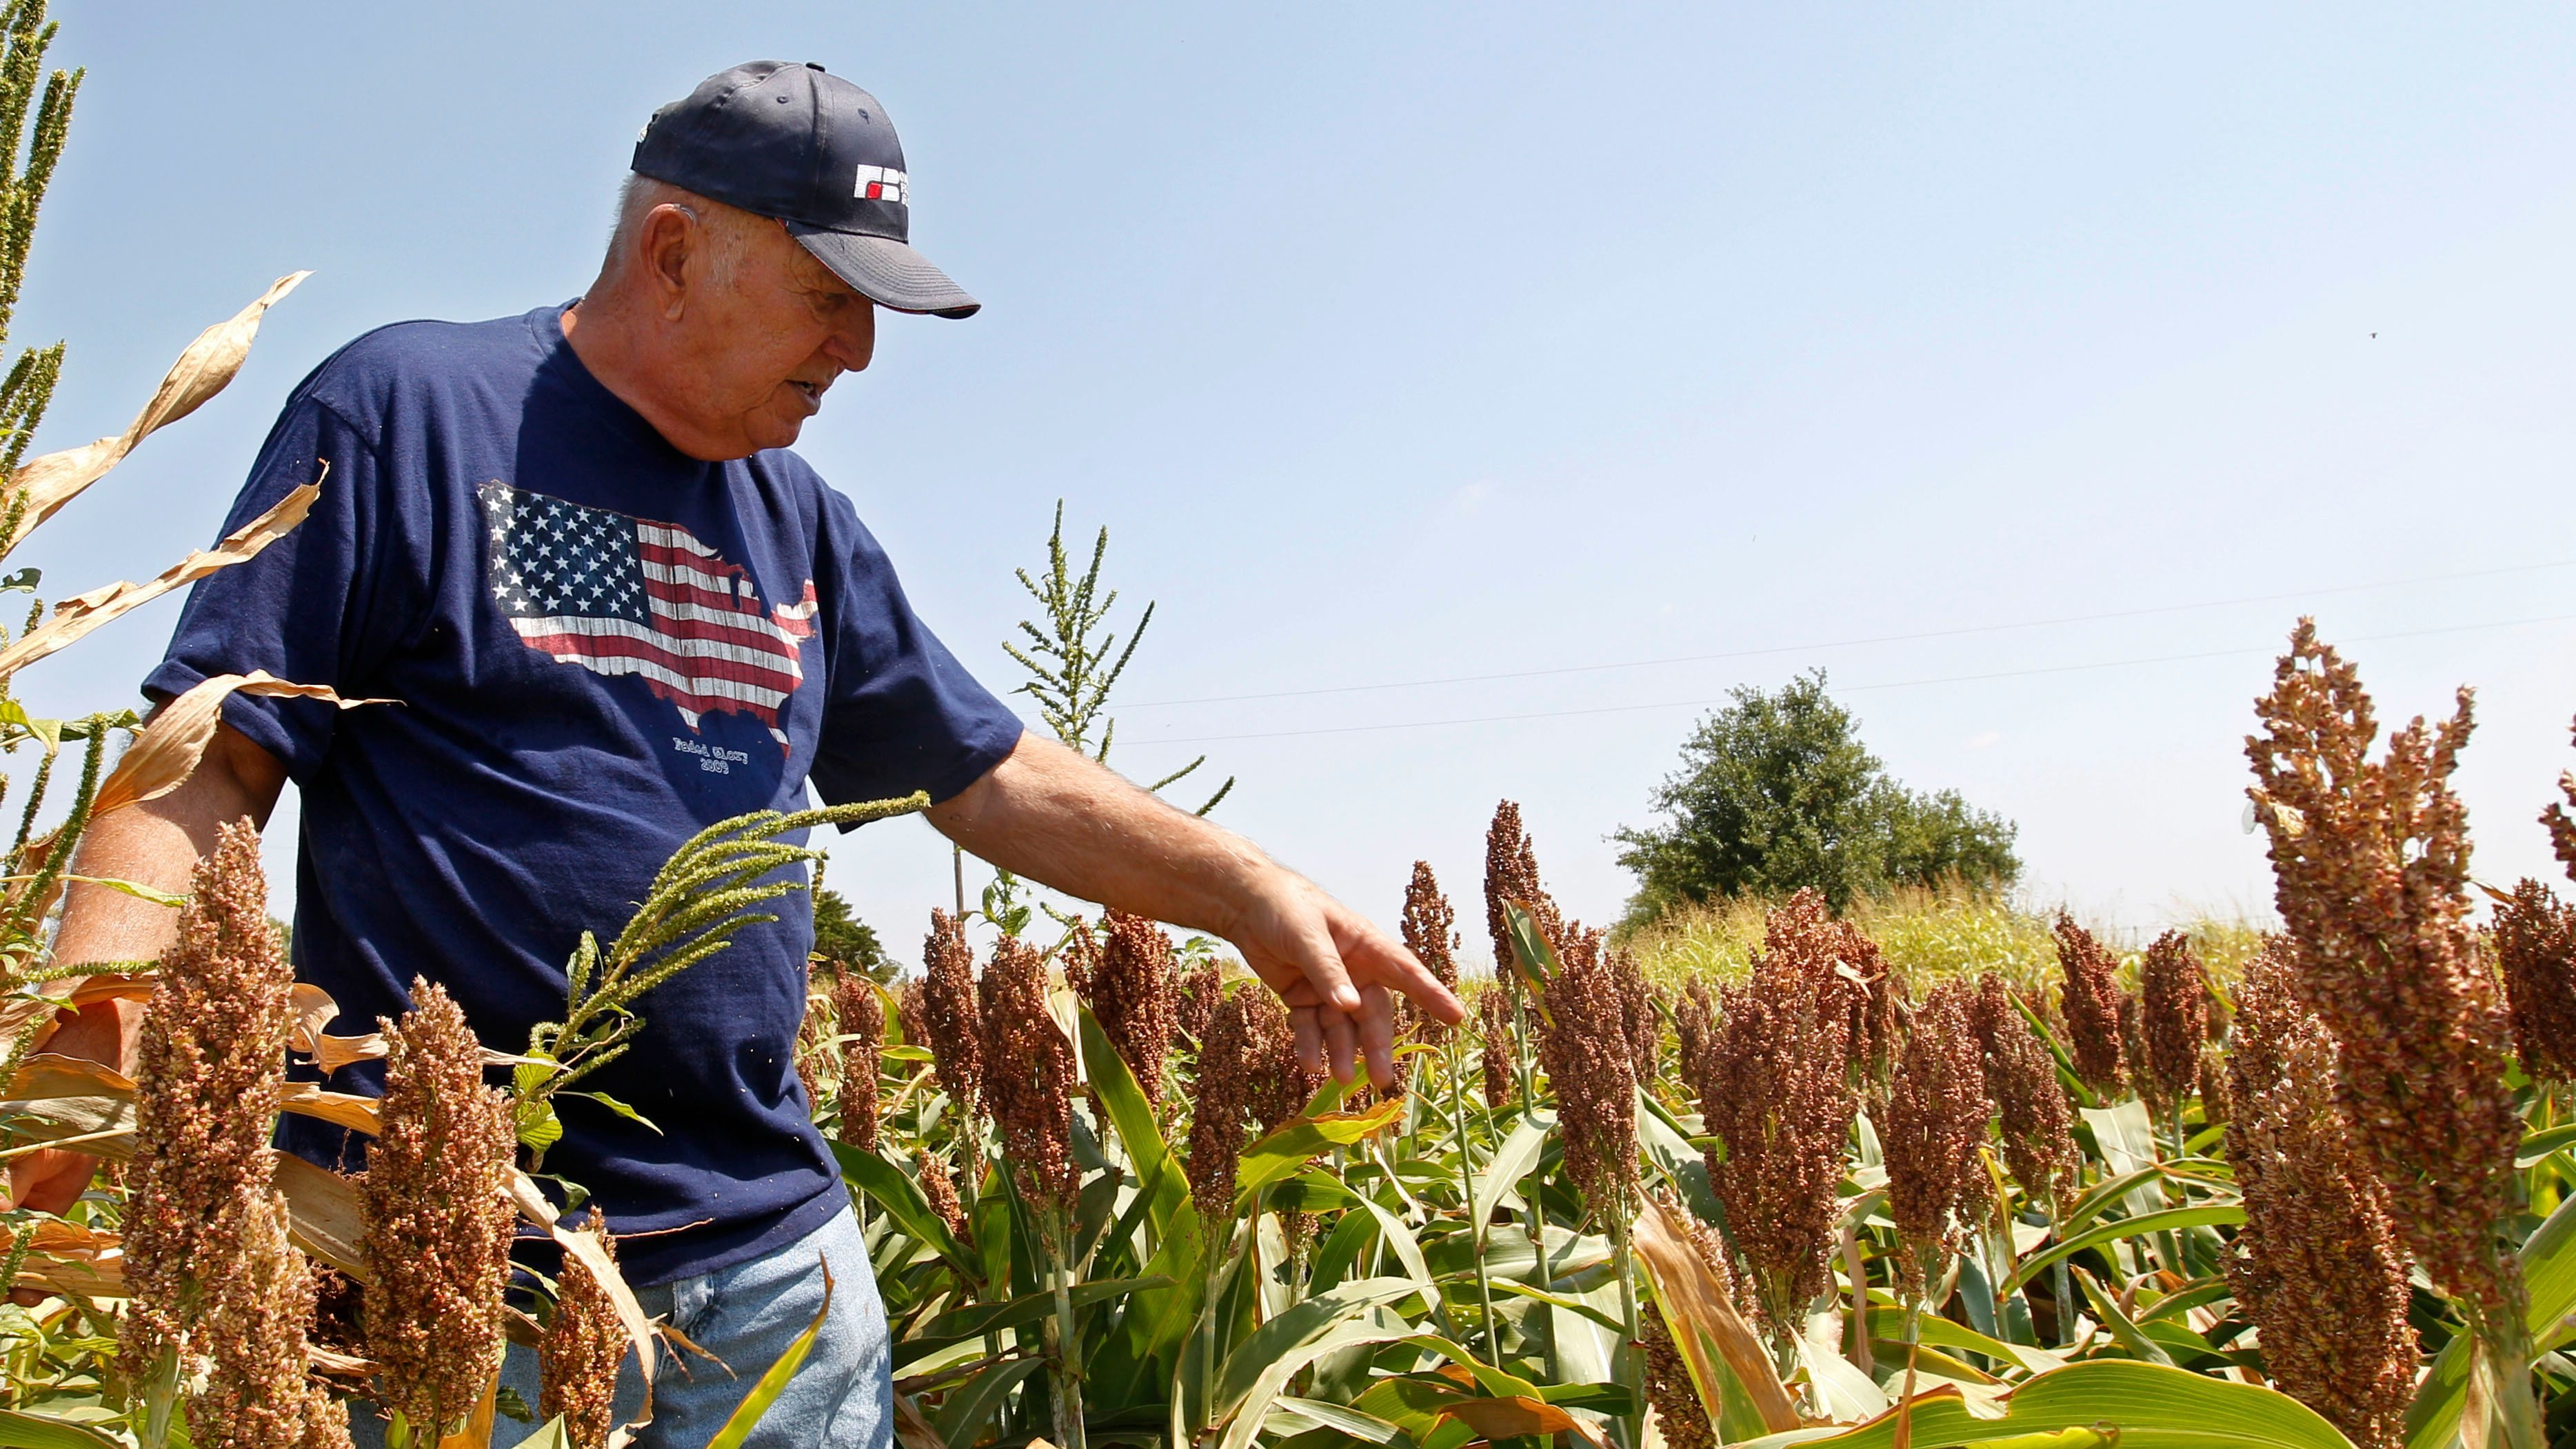 In Latest Trade Salvo, China Imposes 179 Percent Tariff On US Sorghum